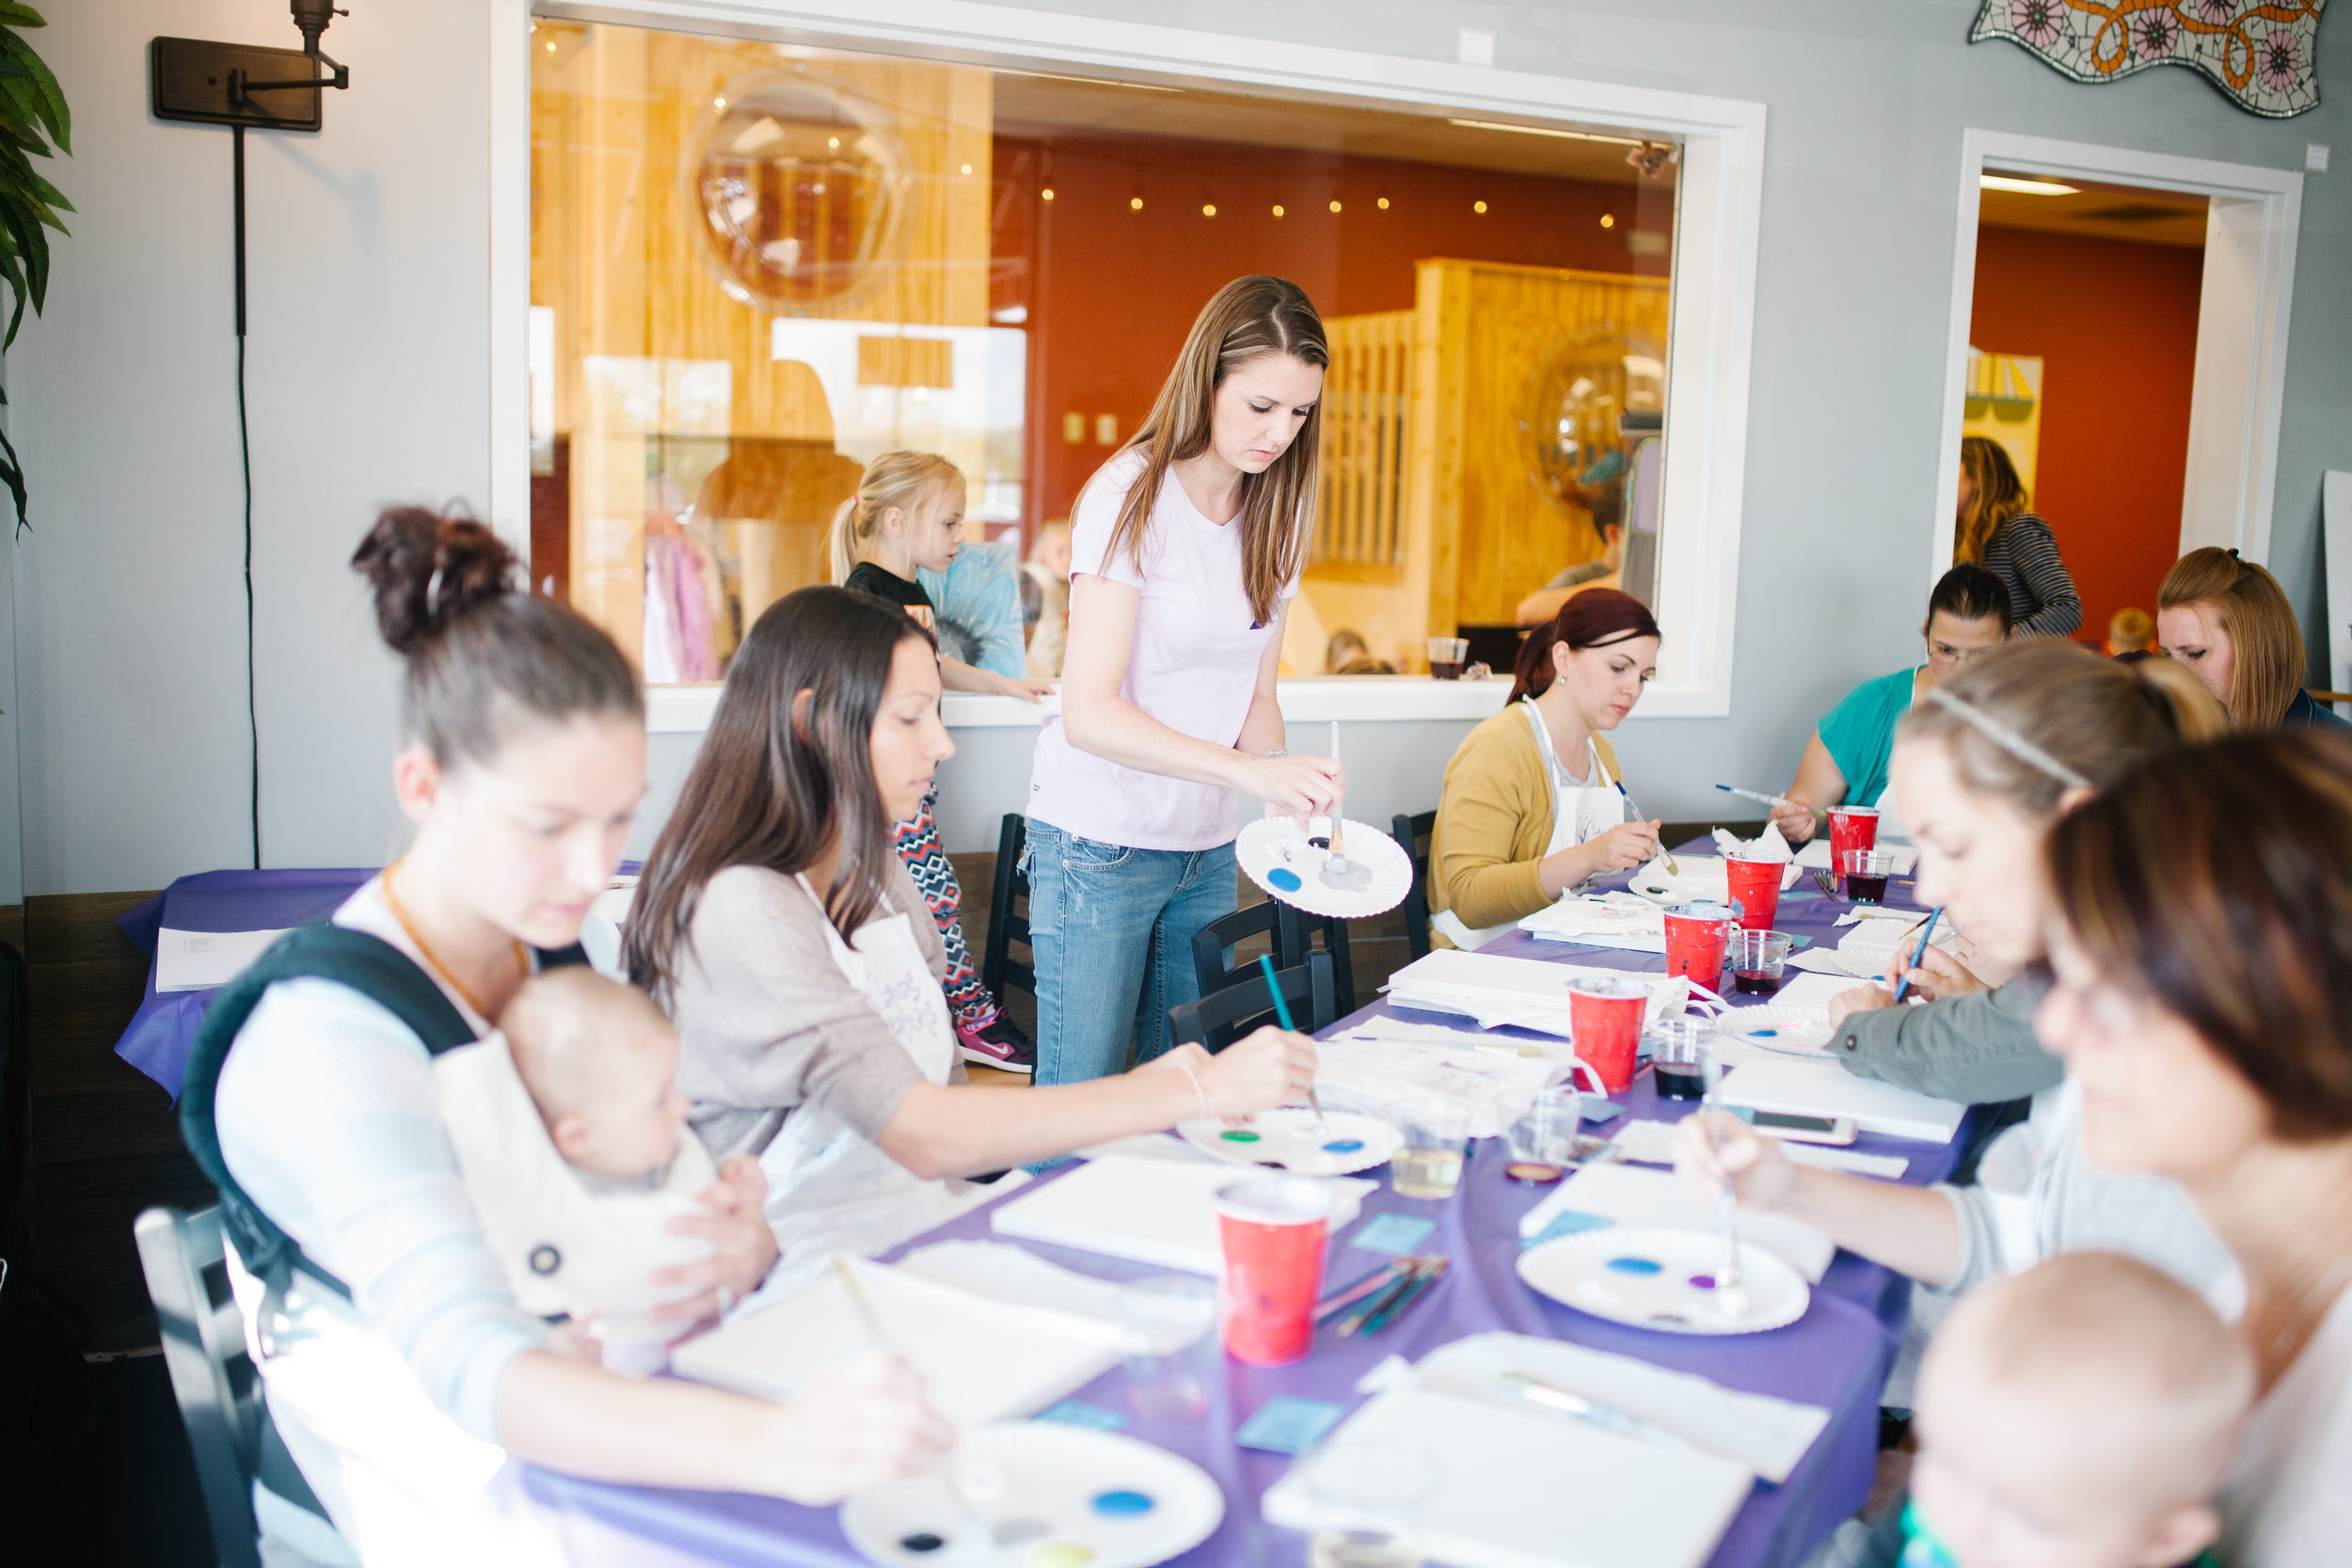 Canvas Creations For You at a 614 Mom event a few years ago